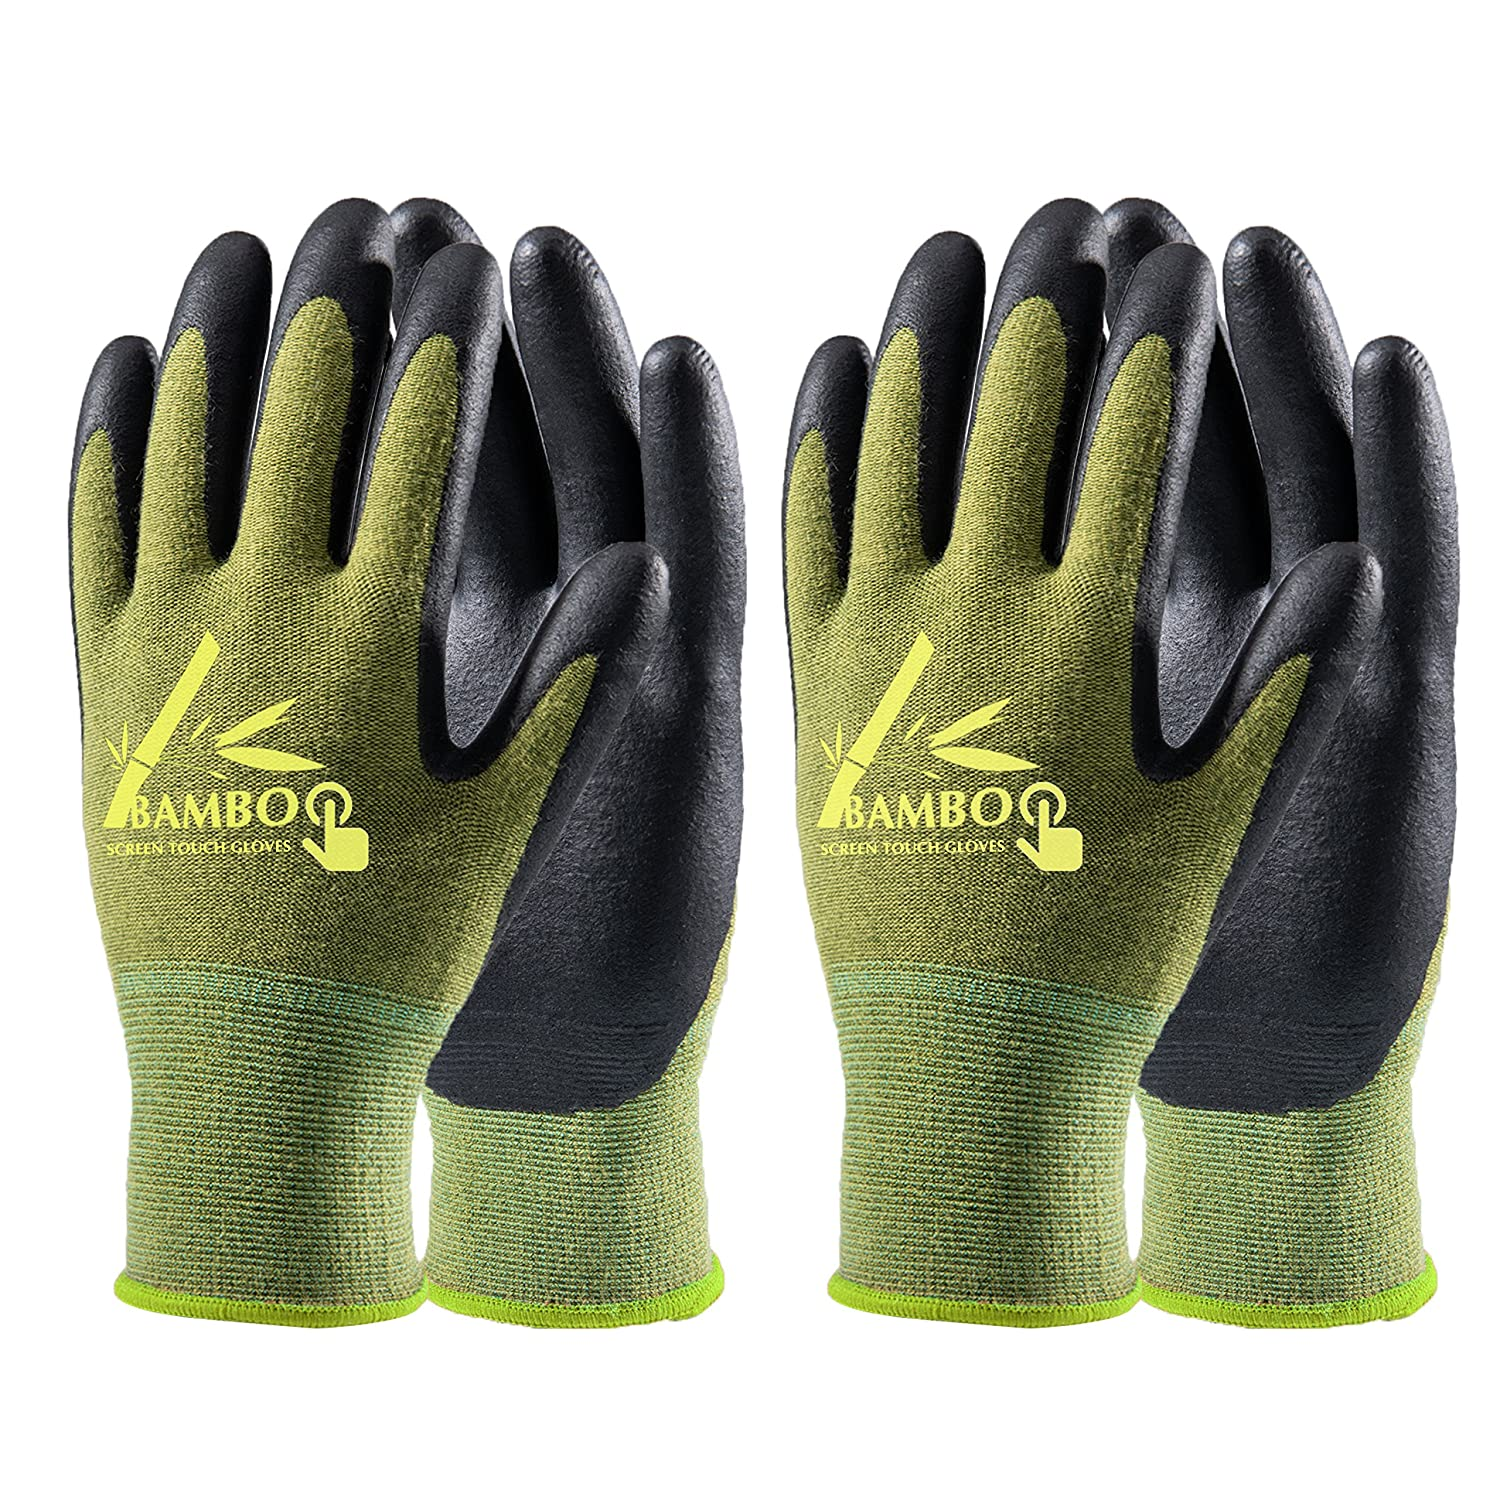 COOLJOB Bamboo Working Gloves for Men and Women, Nitrile Coated Gardening Gloves, Work Gloves Touchscreen for General Purpose, Green/Black, 2 Pairs Pack, Large Size